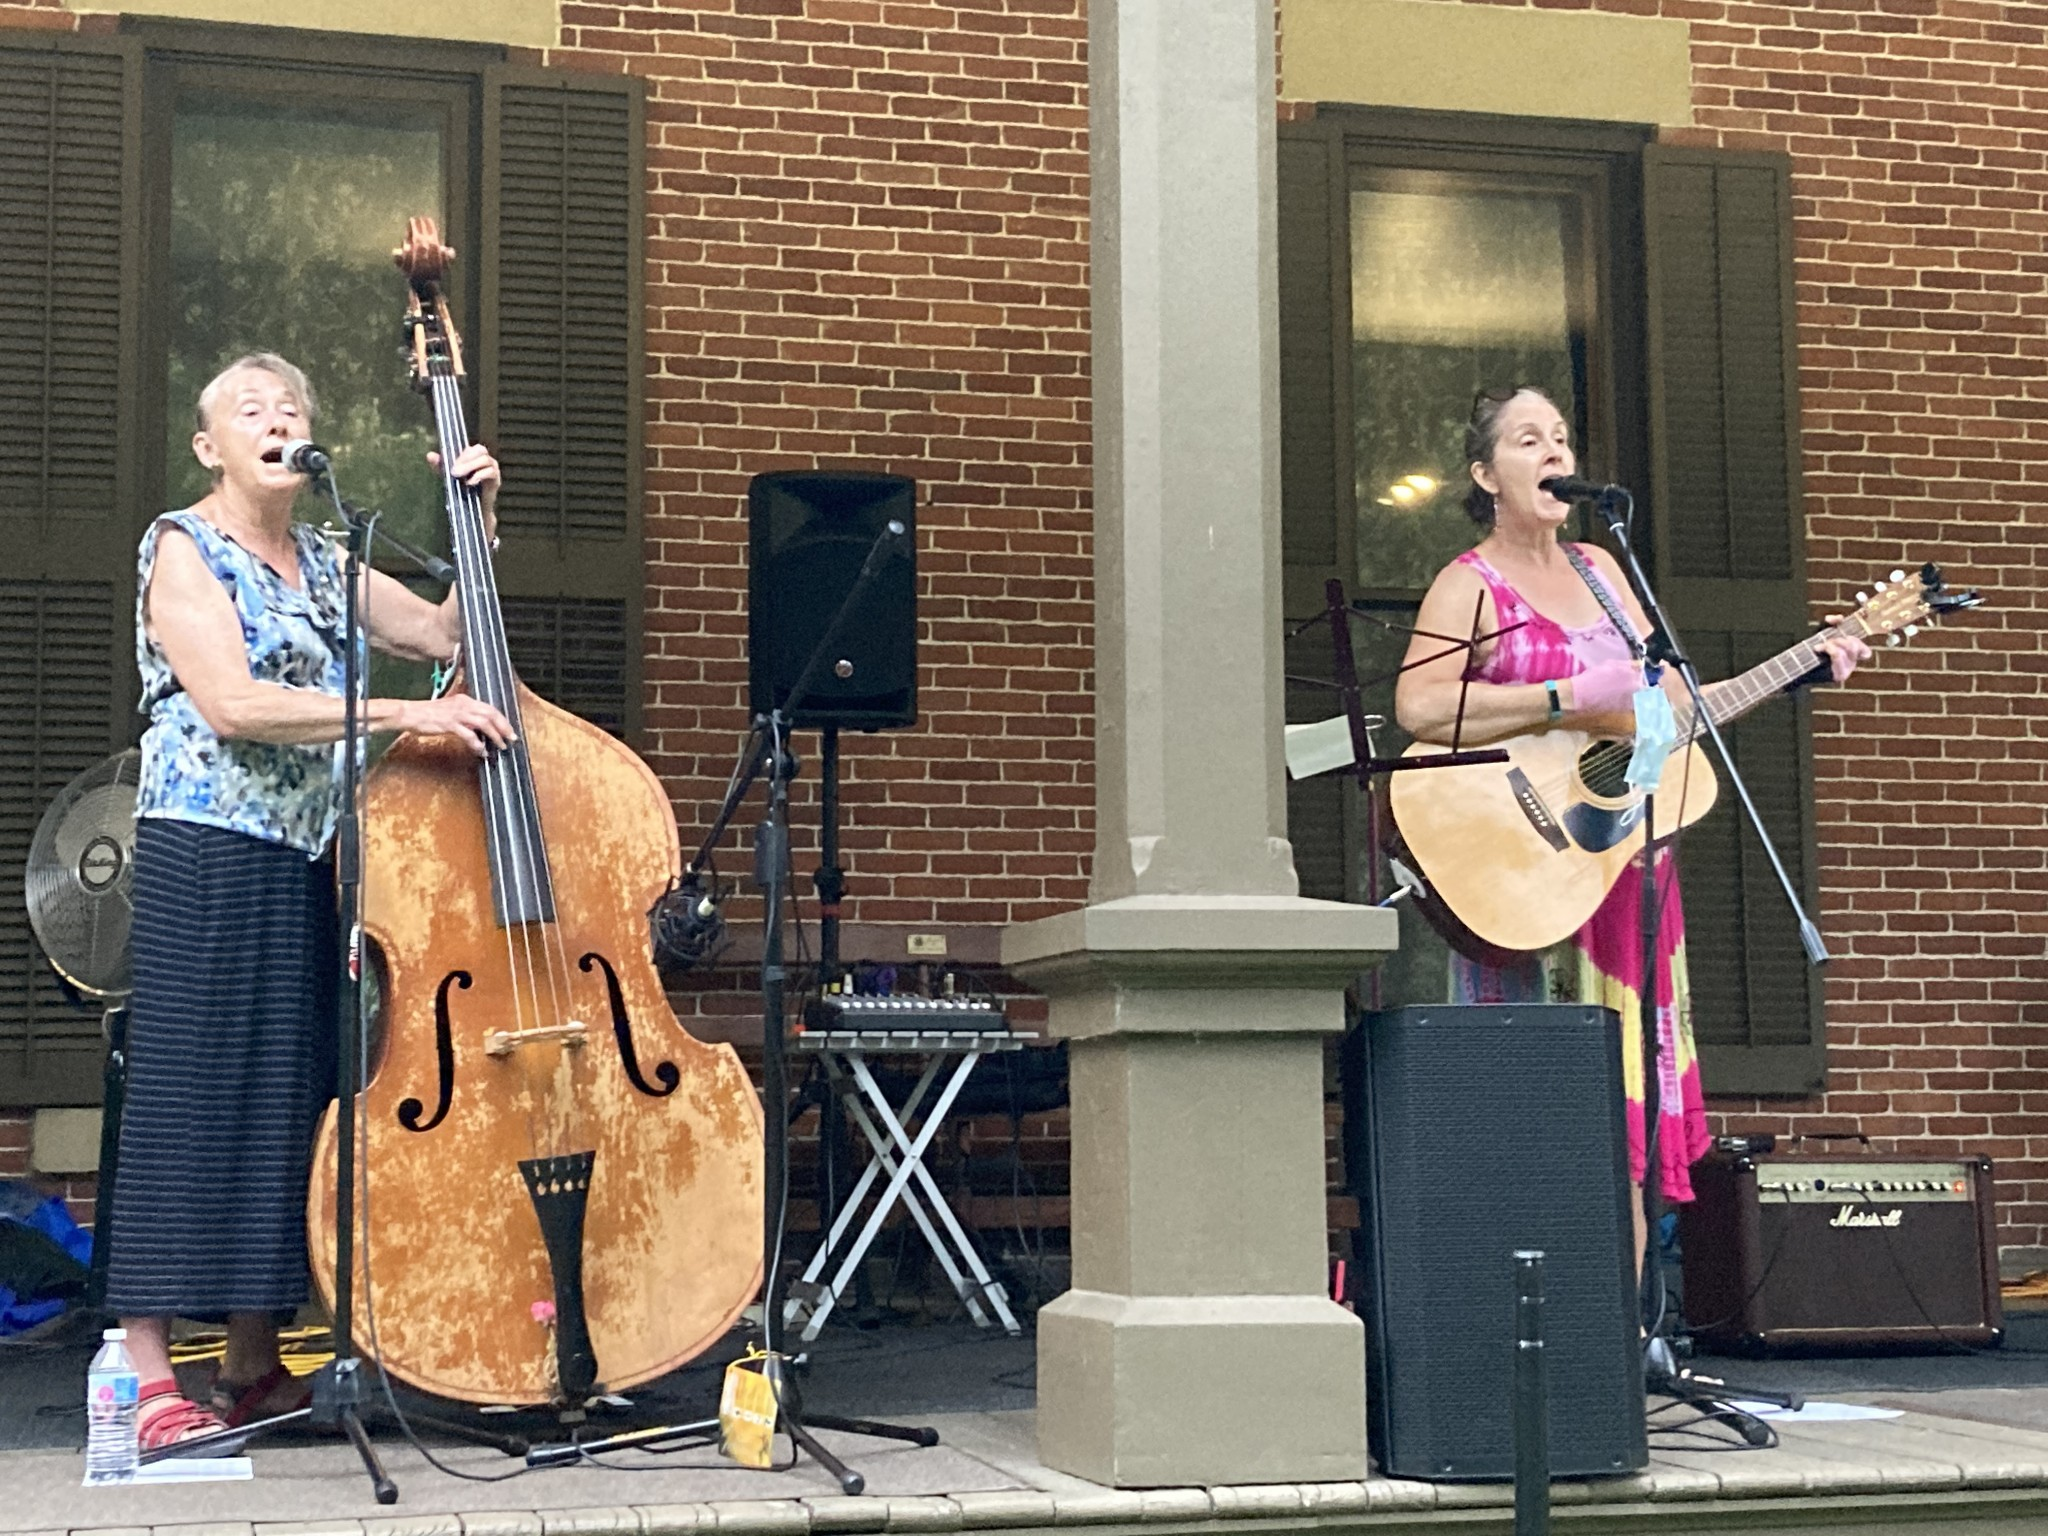 The Cottonwood Jam String Band performs at the July 8 Verandah Concert at Hayes Presidential Library & Museums. The concert will be held Wednesday, July 22, and will feature Nostalgia, a vocal ensemble. (Submitted photo)